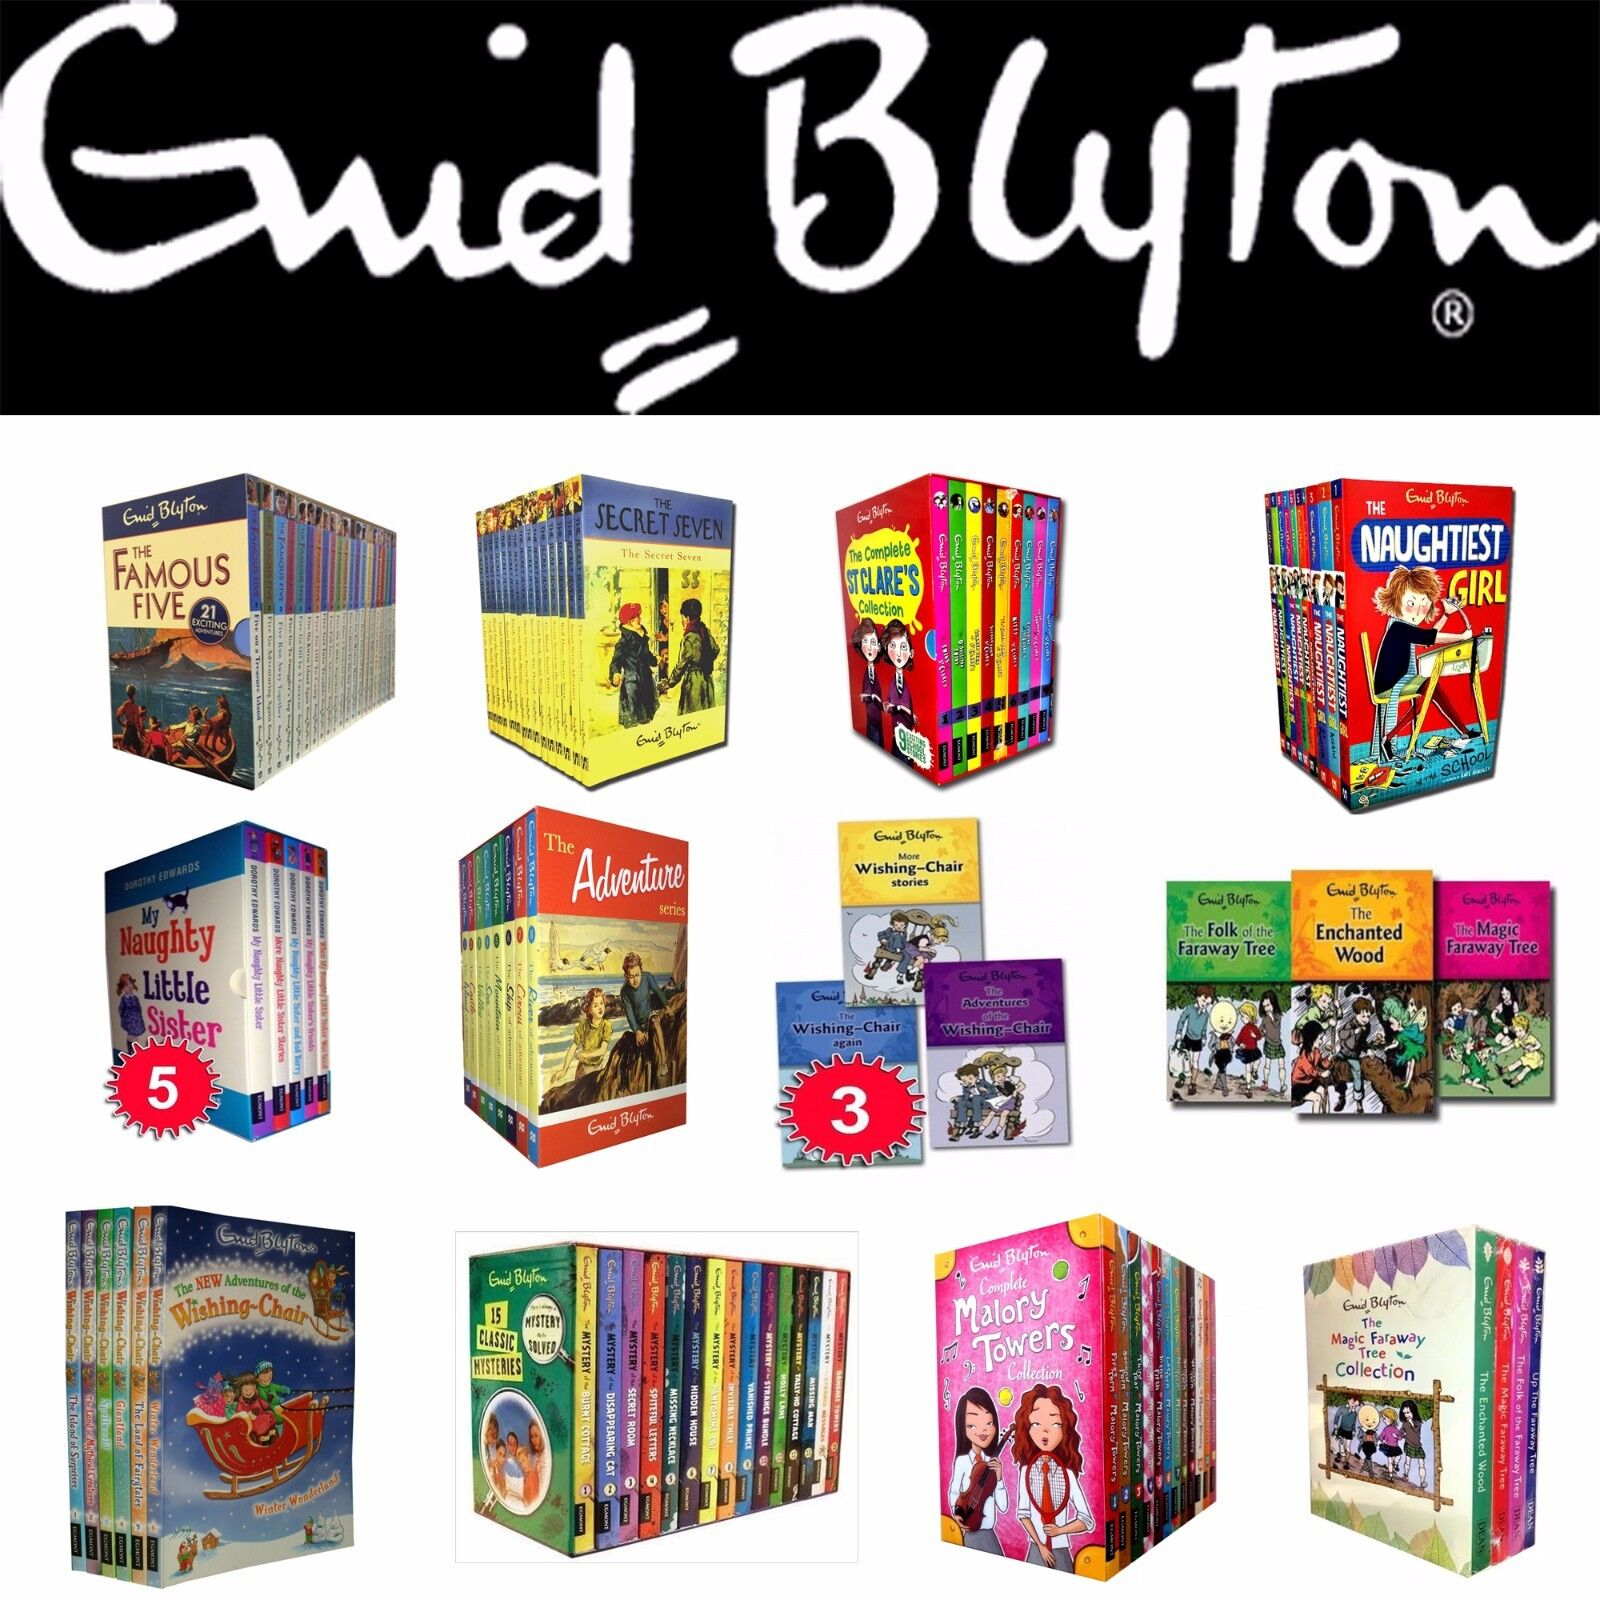 Enid Blyton Collection Books Box Set Famous Five Secret Seven Mystery Of The Vanished Prince Complete Includes